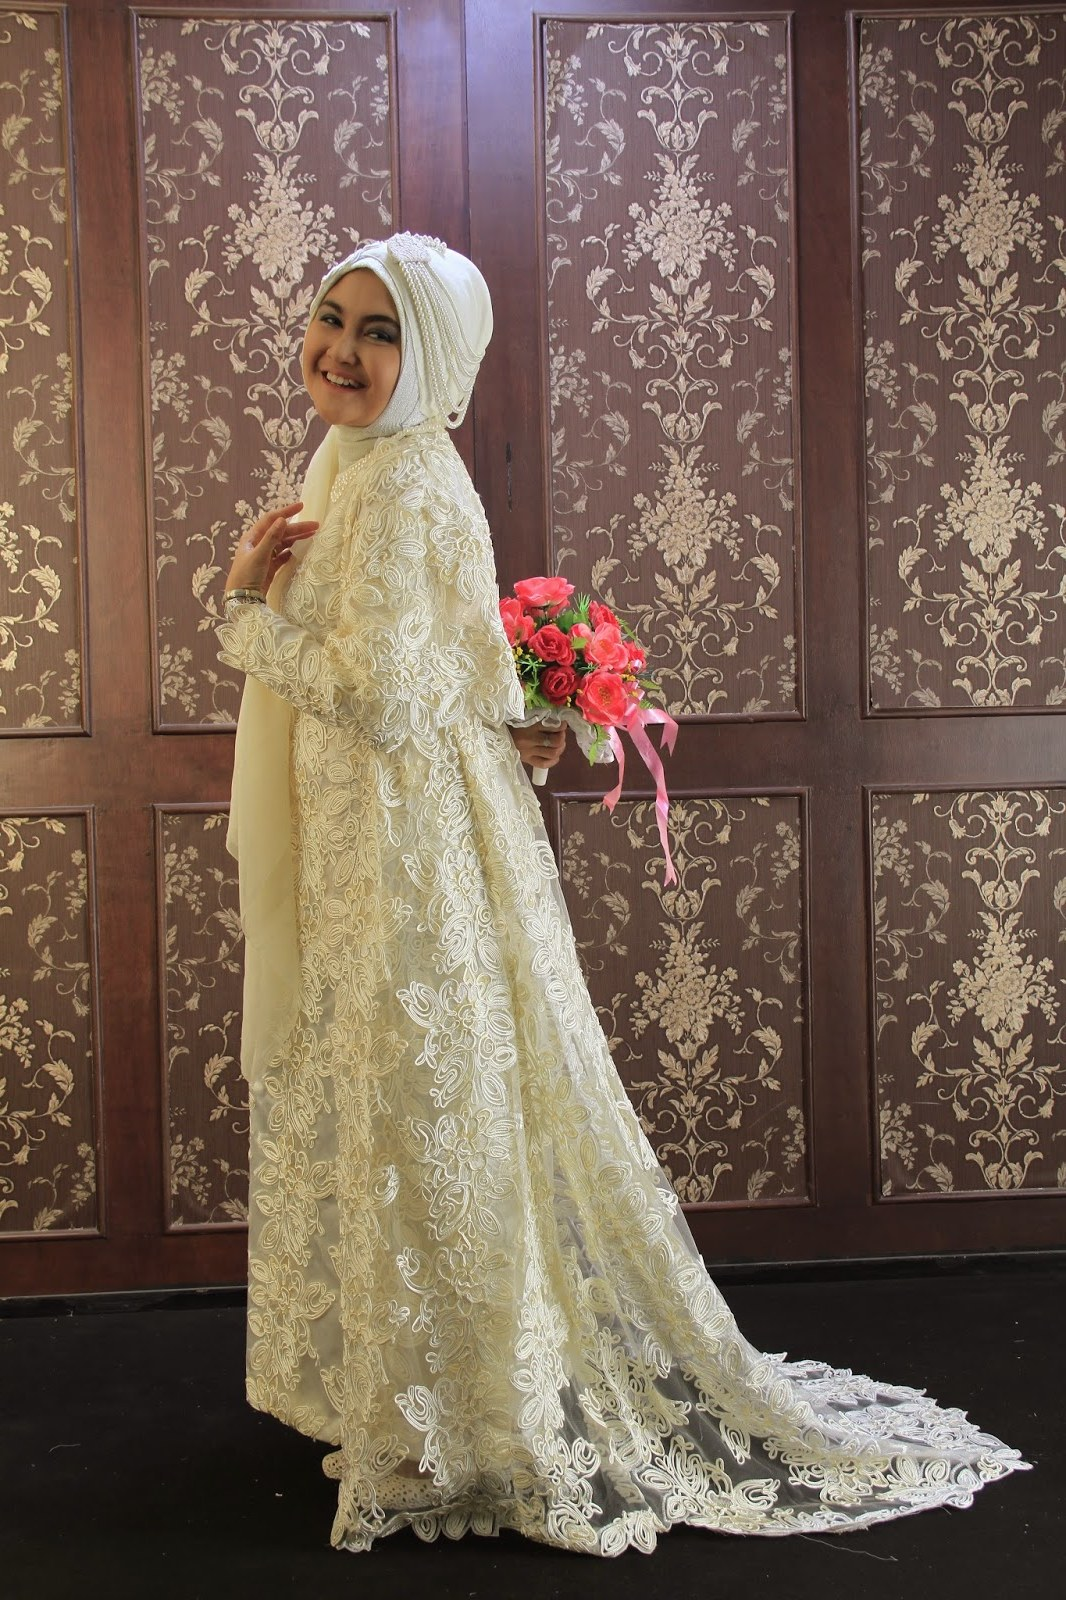 Model Gaun Muslimah Pengantin Wddj Padme Wedding Dress Confessions Of A Seamstress the